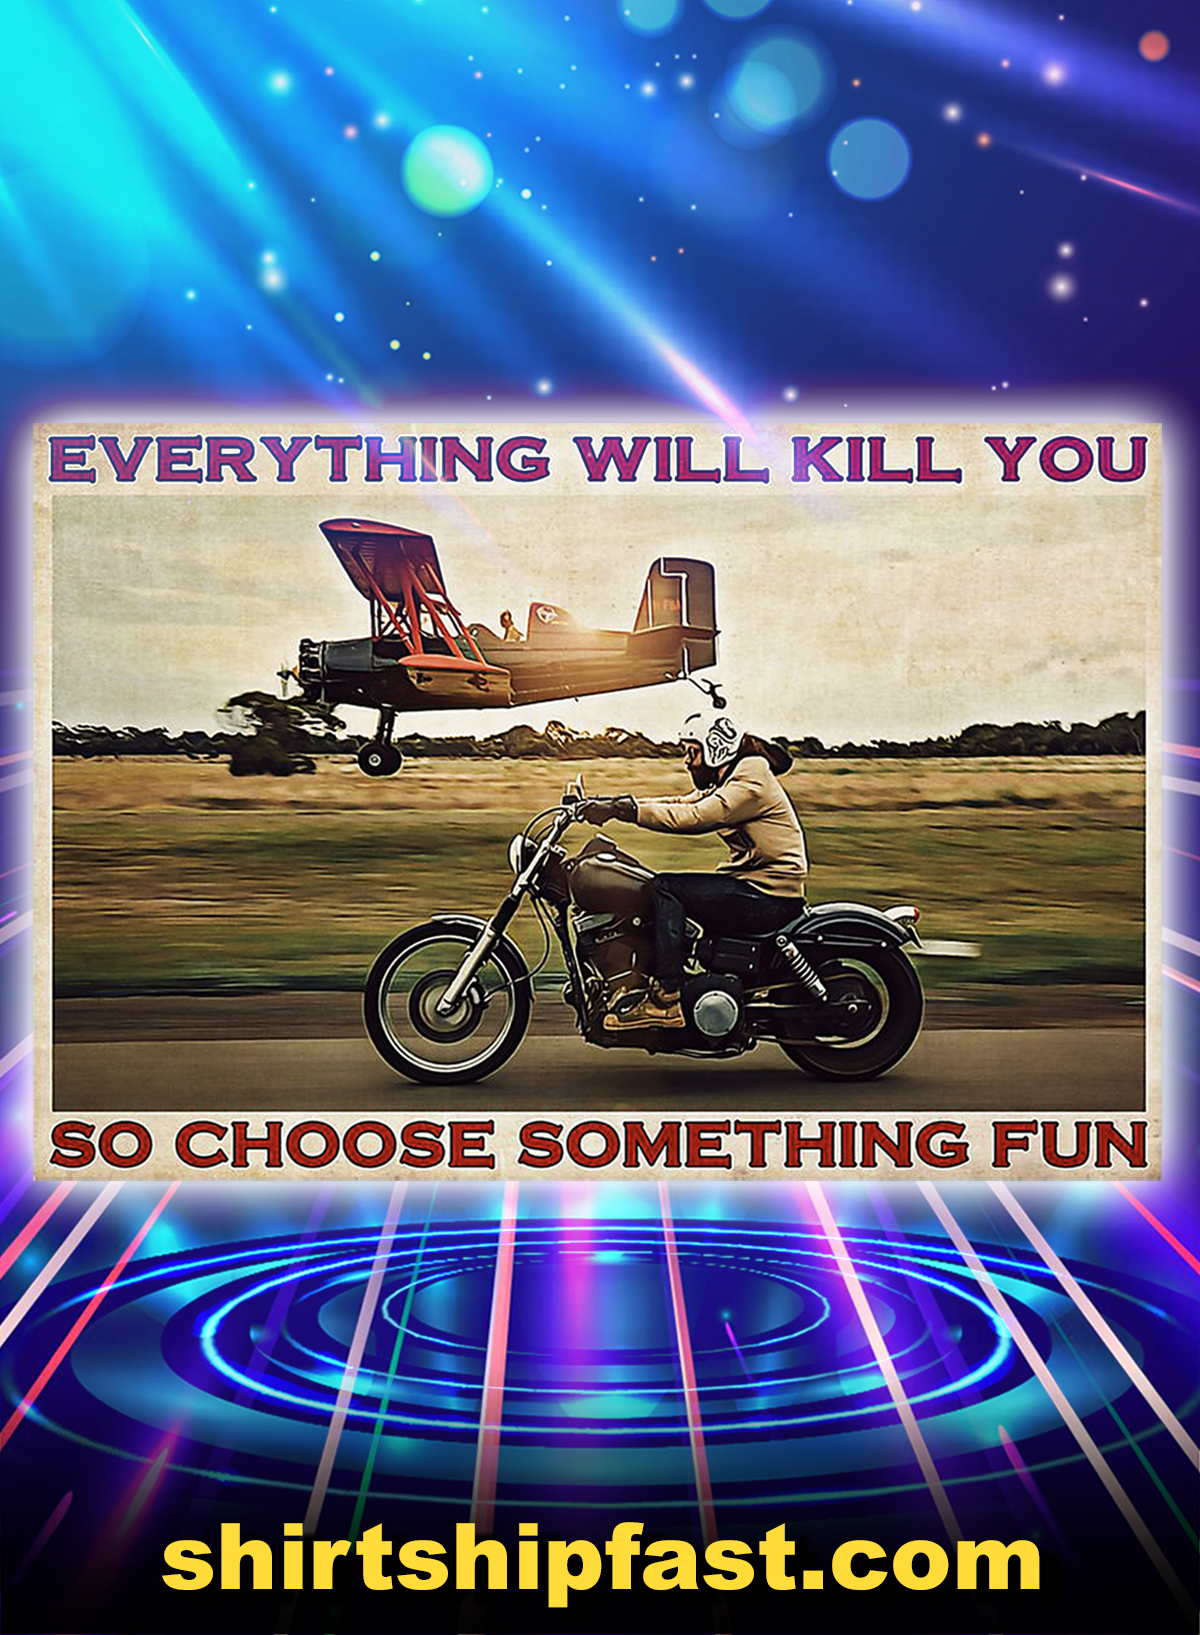 Motorbike and planes everything will kill you so choose something fun poster - A1